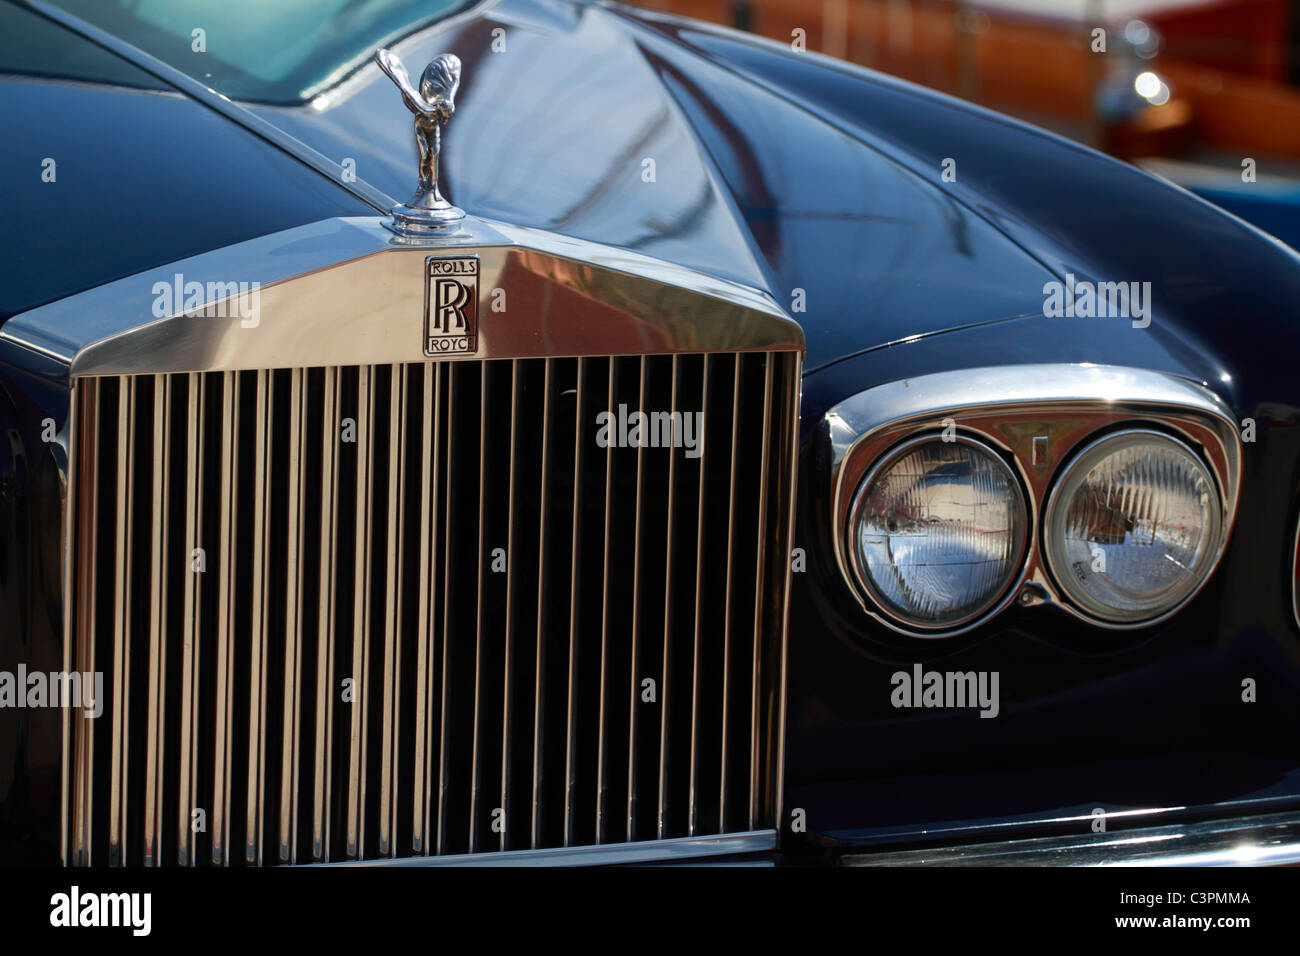 Detail view of a Rolls royce vintage car - Stock Image